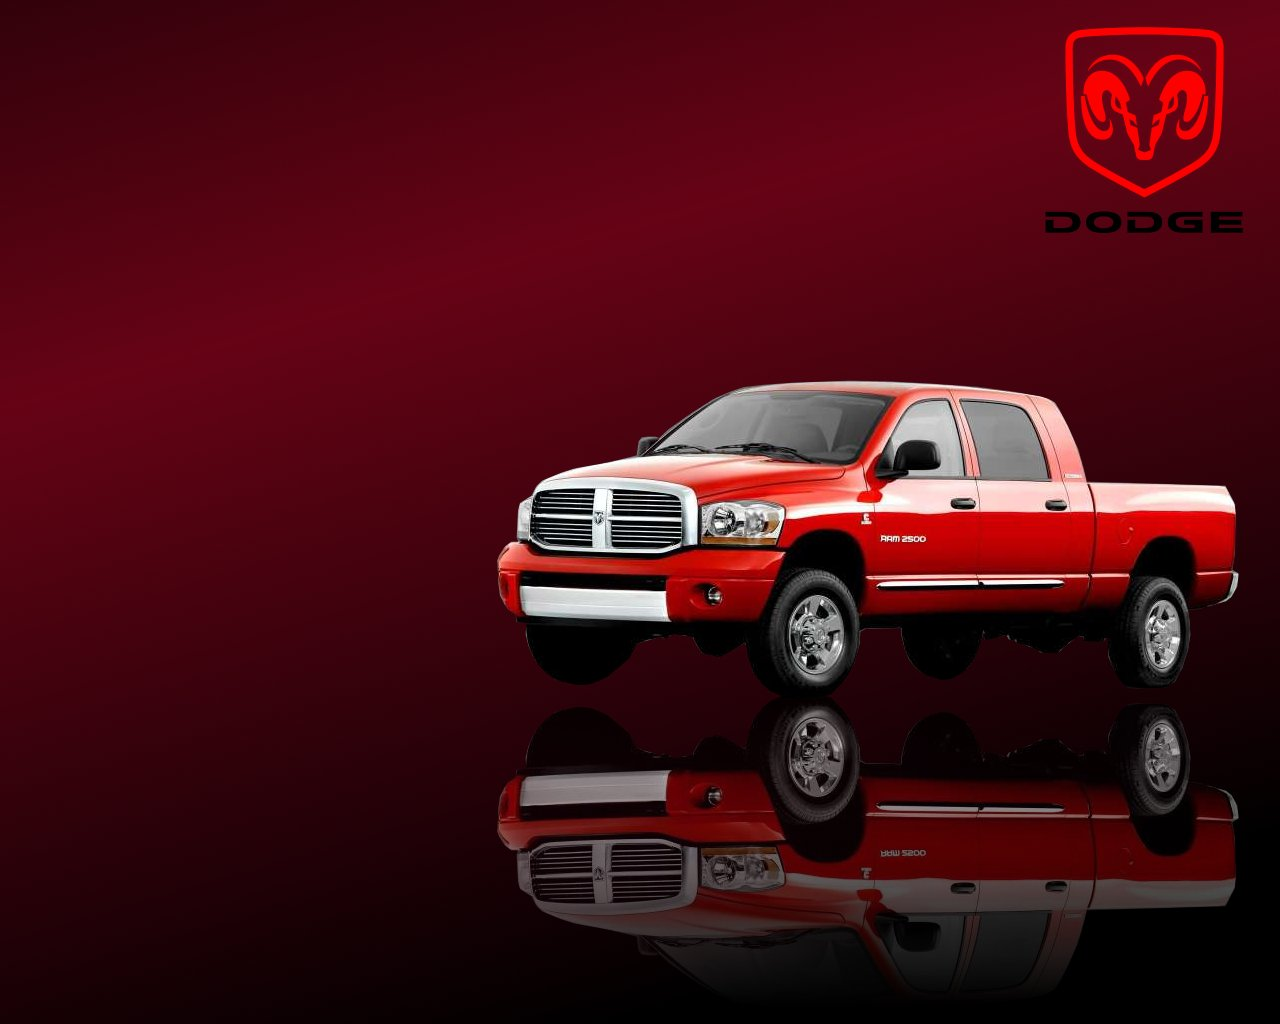 Dodge Ram Hemi Wallpaper Wallpapersafari